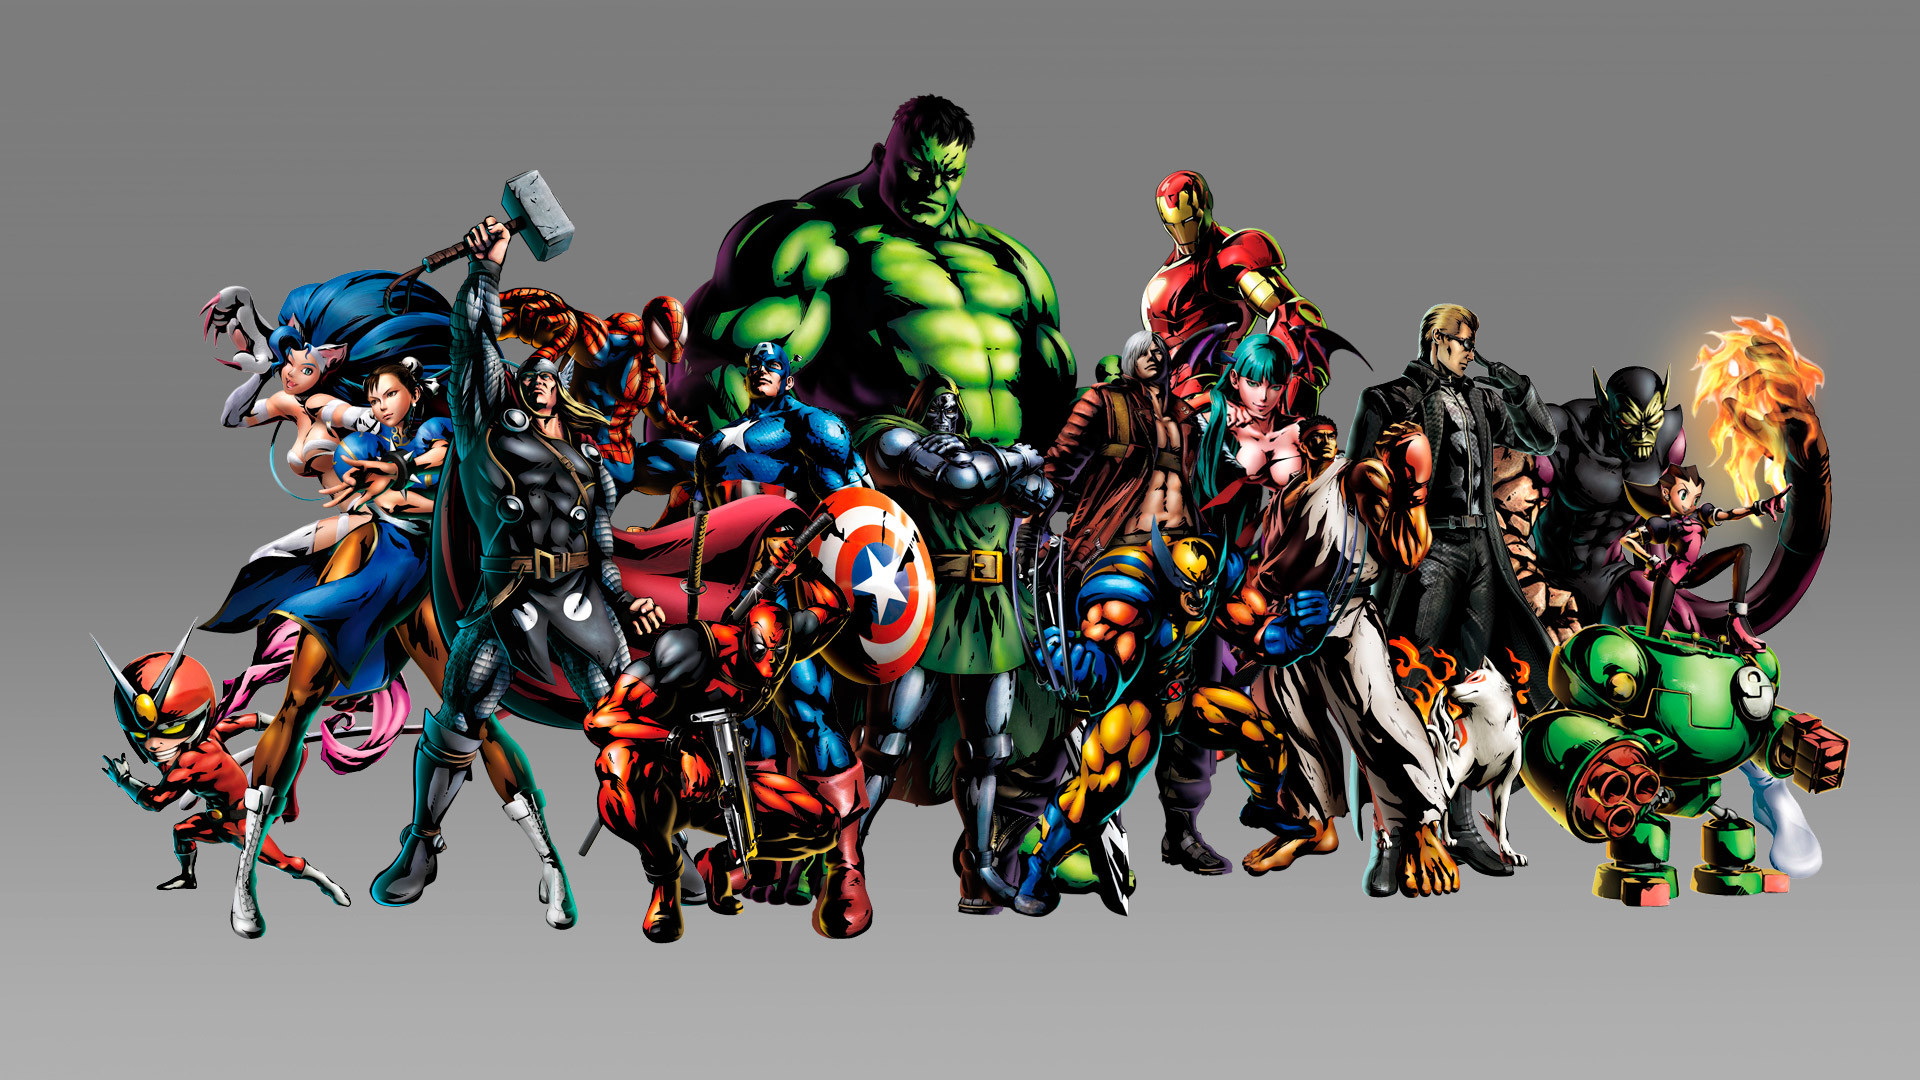 Cool Wallpaper Marvel Anime - 1188725-dc-marvel-superheroes-wallpaper-1920x1080-cell-phone  Gallery_562787.jpg